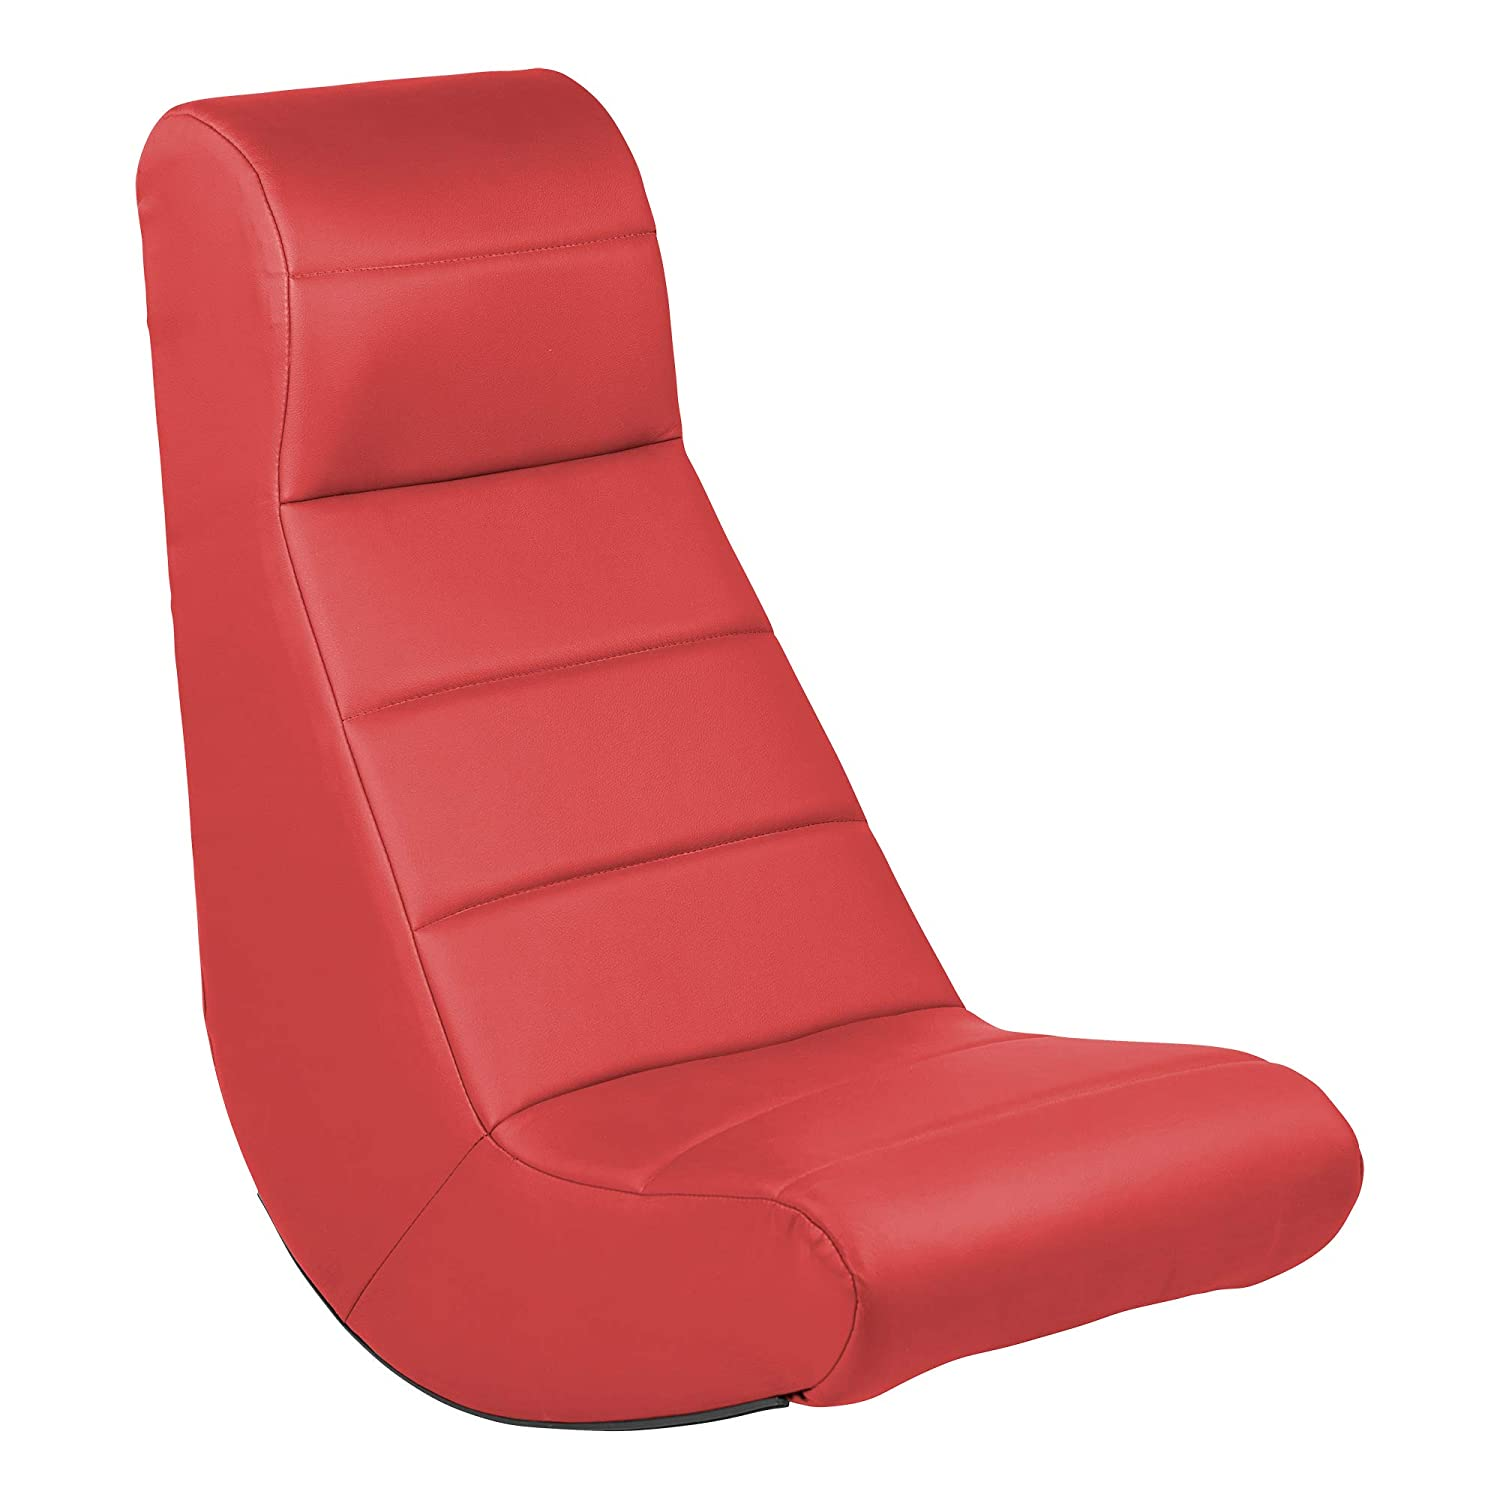 Sprogs Soft Casual Floor Rocker for Gaming, Classroom, Playroom, Reading or TV Watching - Red